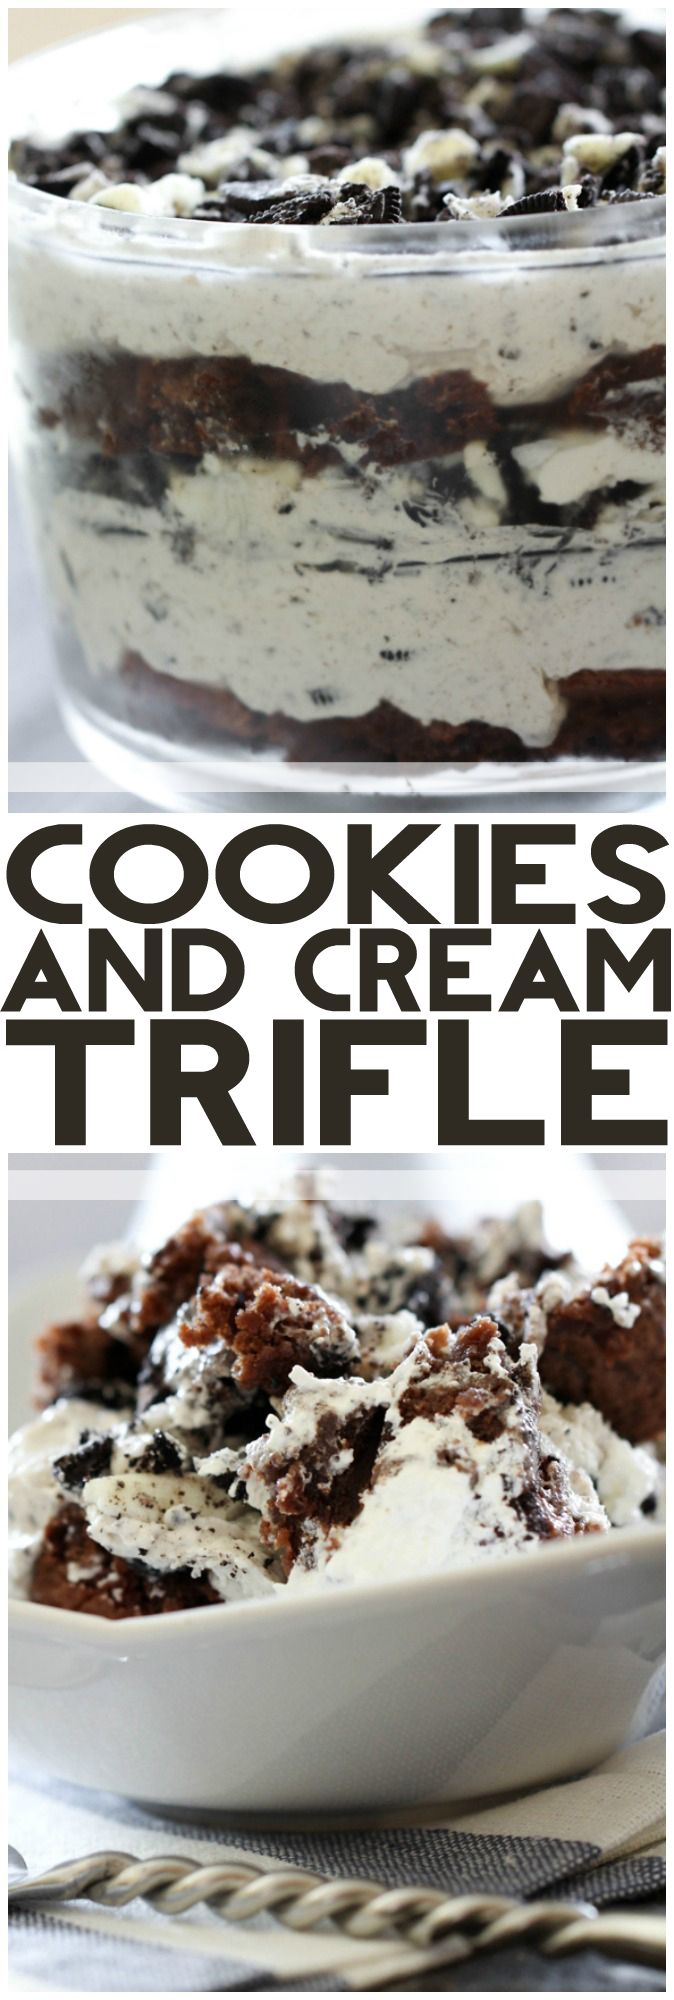 Cookies and Cream Trifle